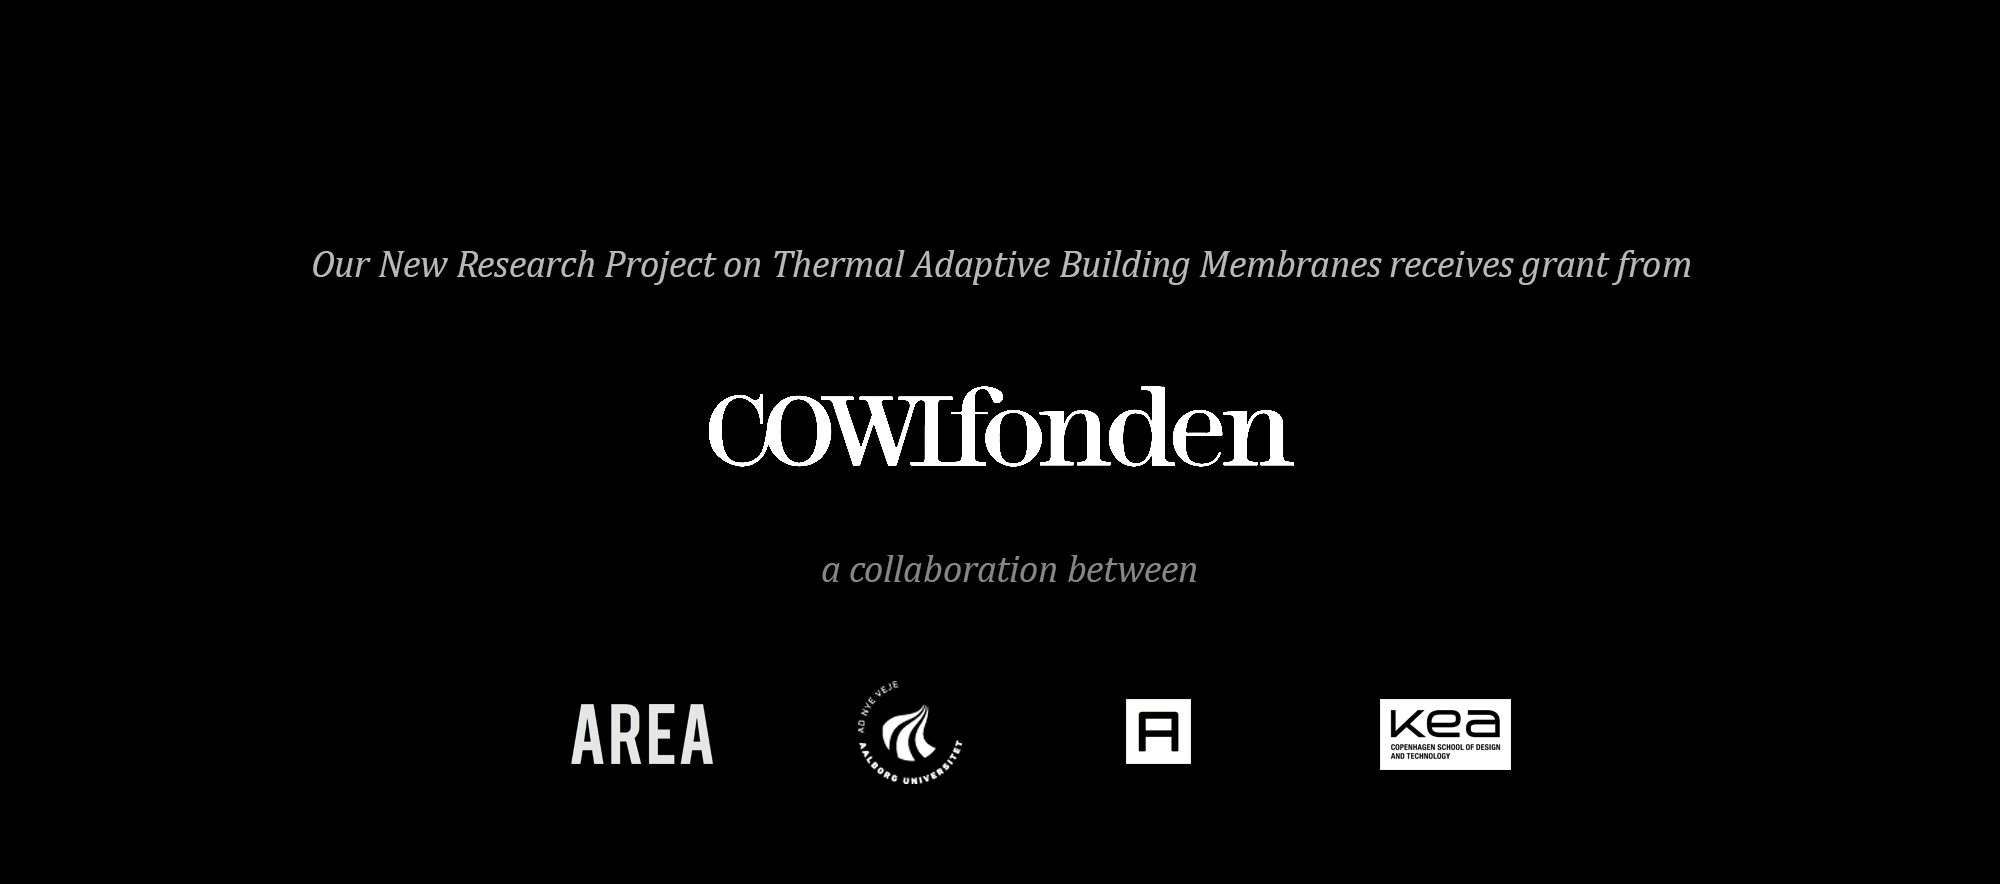 The COWI Foundation funds our new research project on Thermal Adaptive Architectural Membranes, where we interweave architecture, engineering and perceptional psychology (AAU+AREA+AAA+KEA), based on our continuous development of the Sense Projects.   http://www.cowifonden.dk/menu/donationer/nyere-projekter/bevillinger-2017